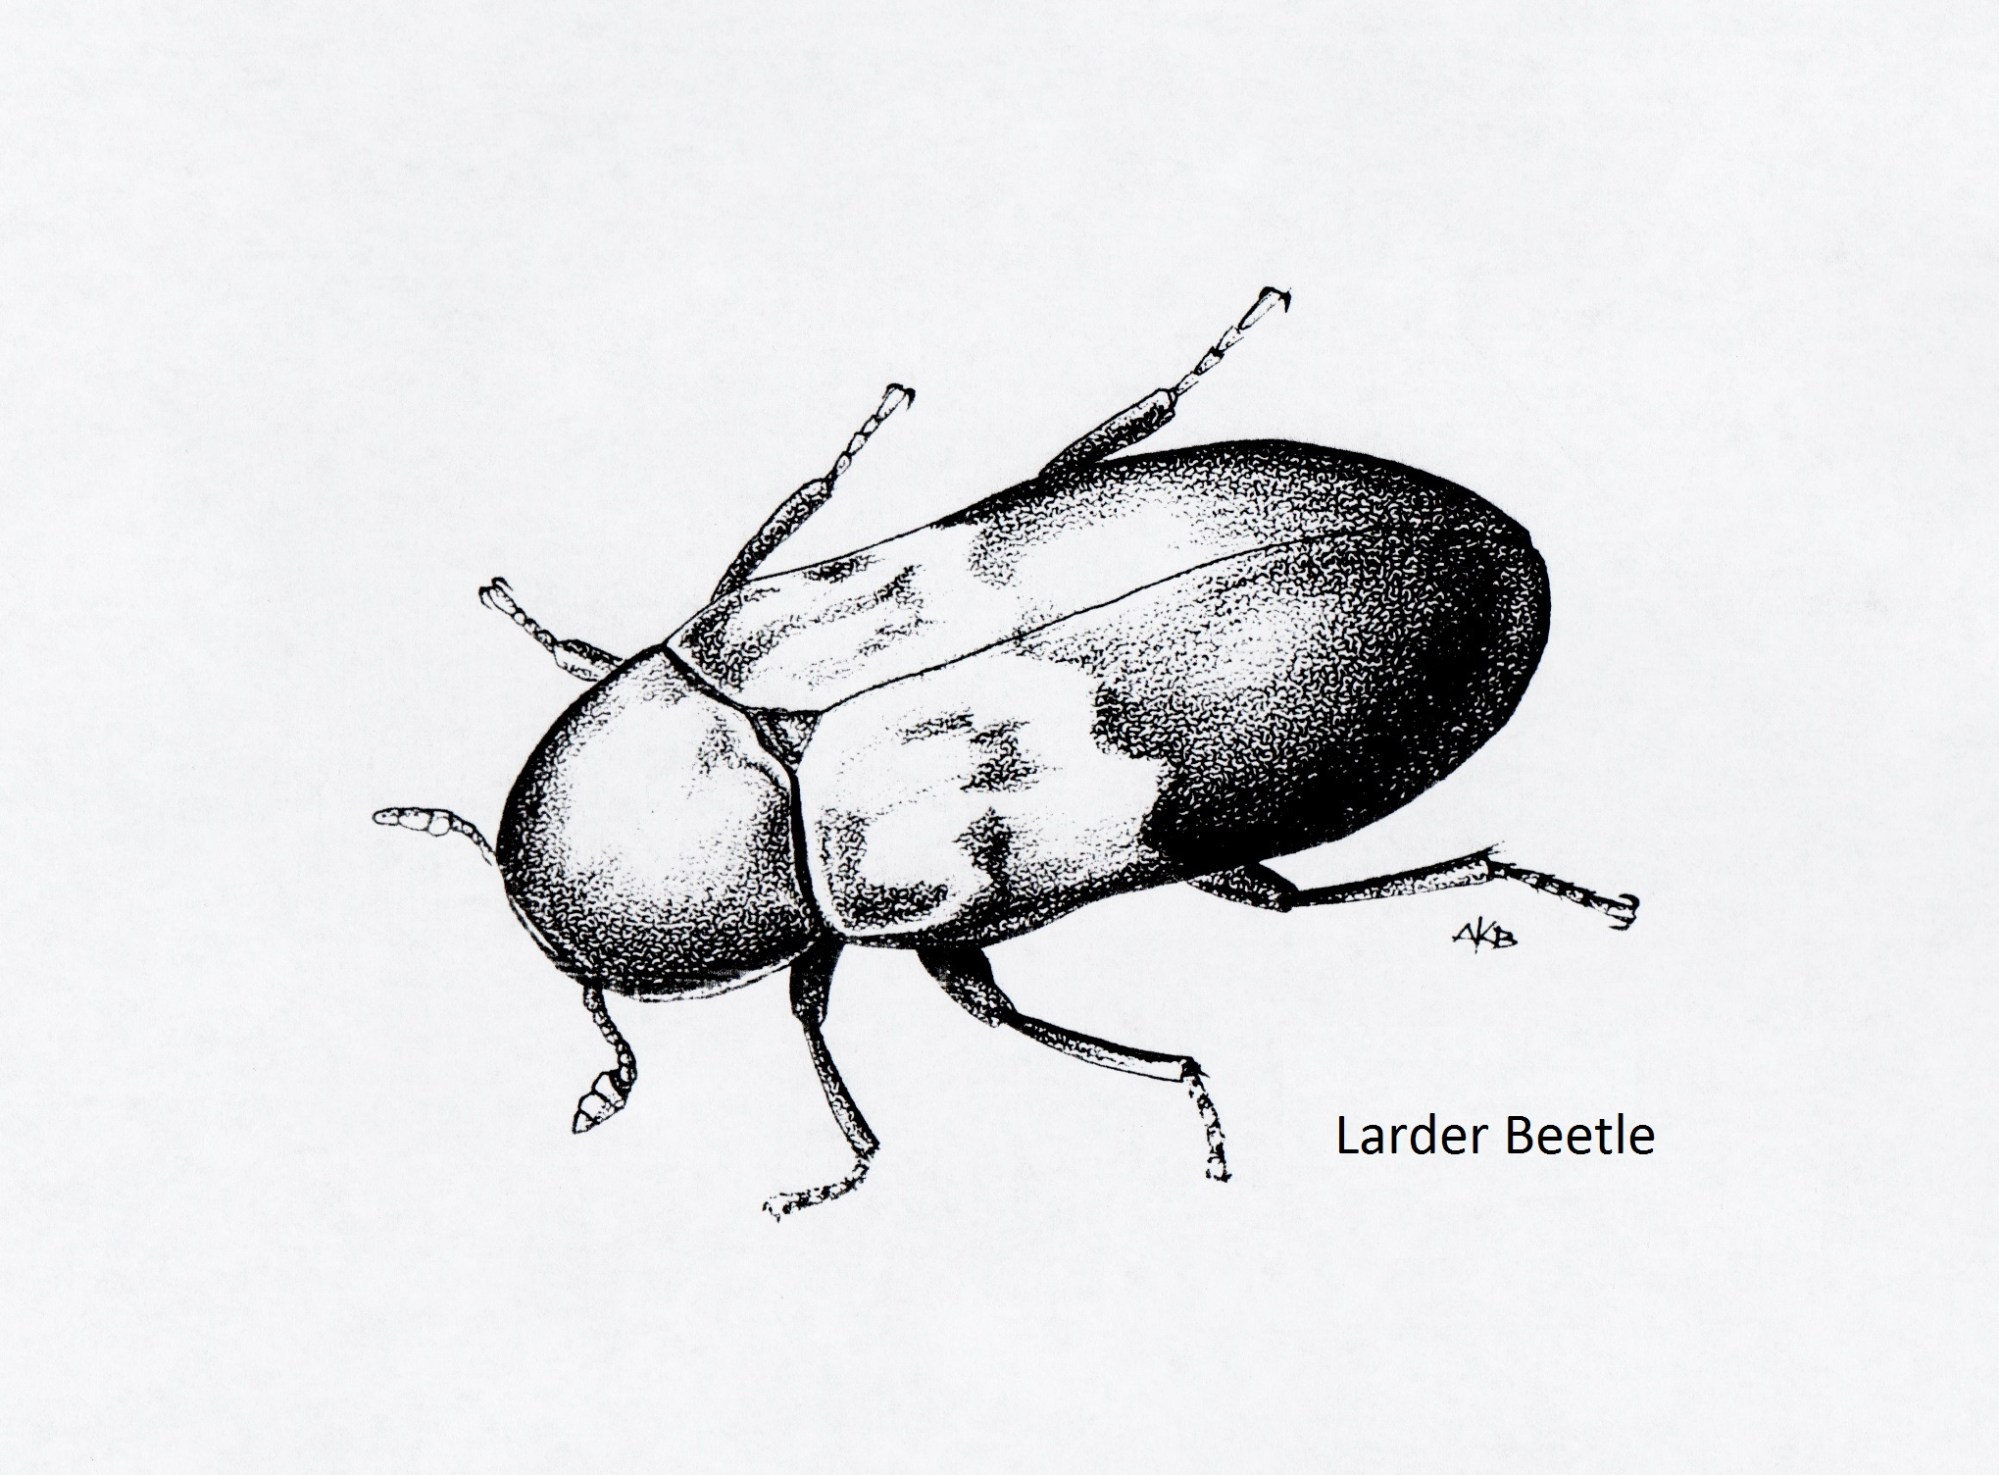 hight resolution of larder beetle dermestes lardarius